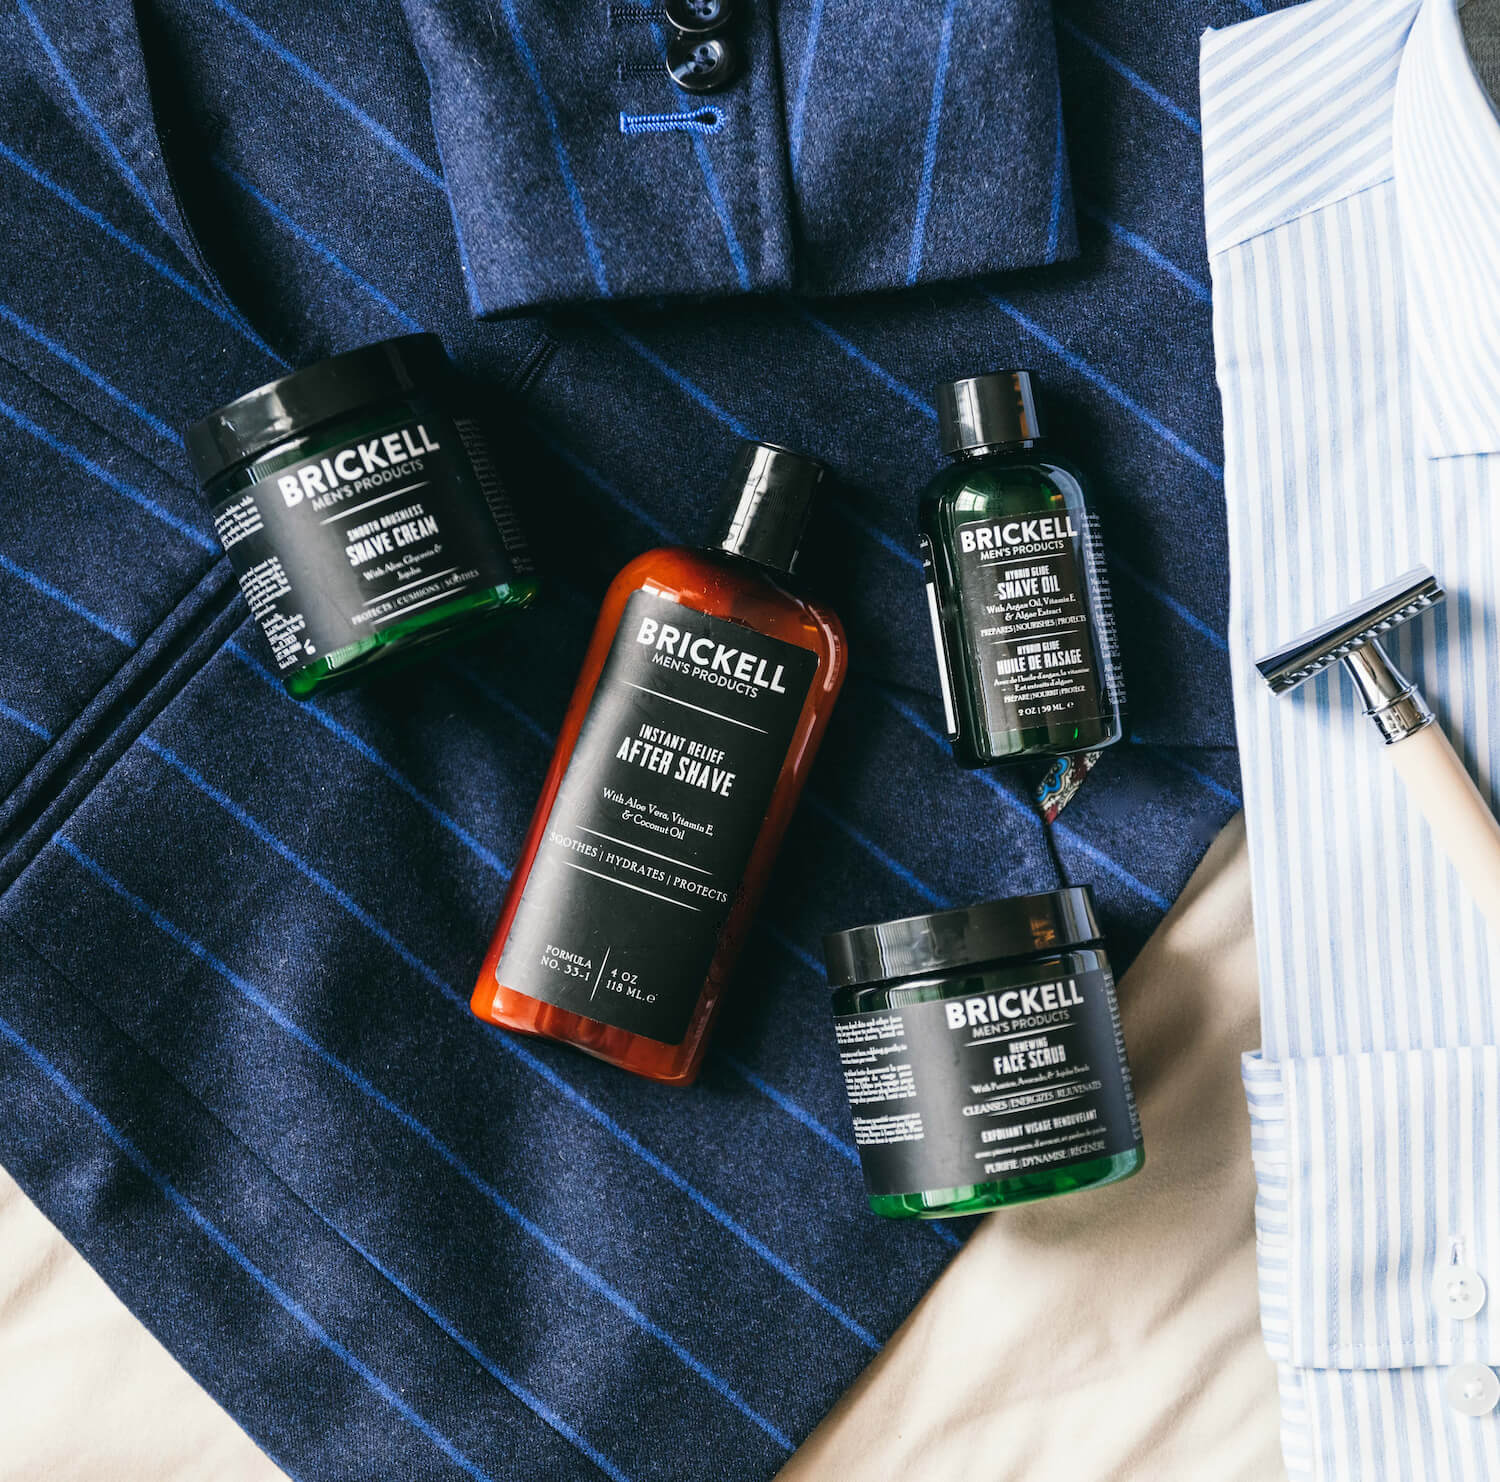 Face Scrub, Shave Oil, Shave Cream, and Aftershave